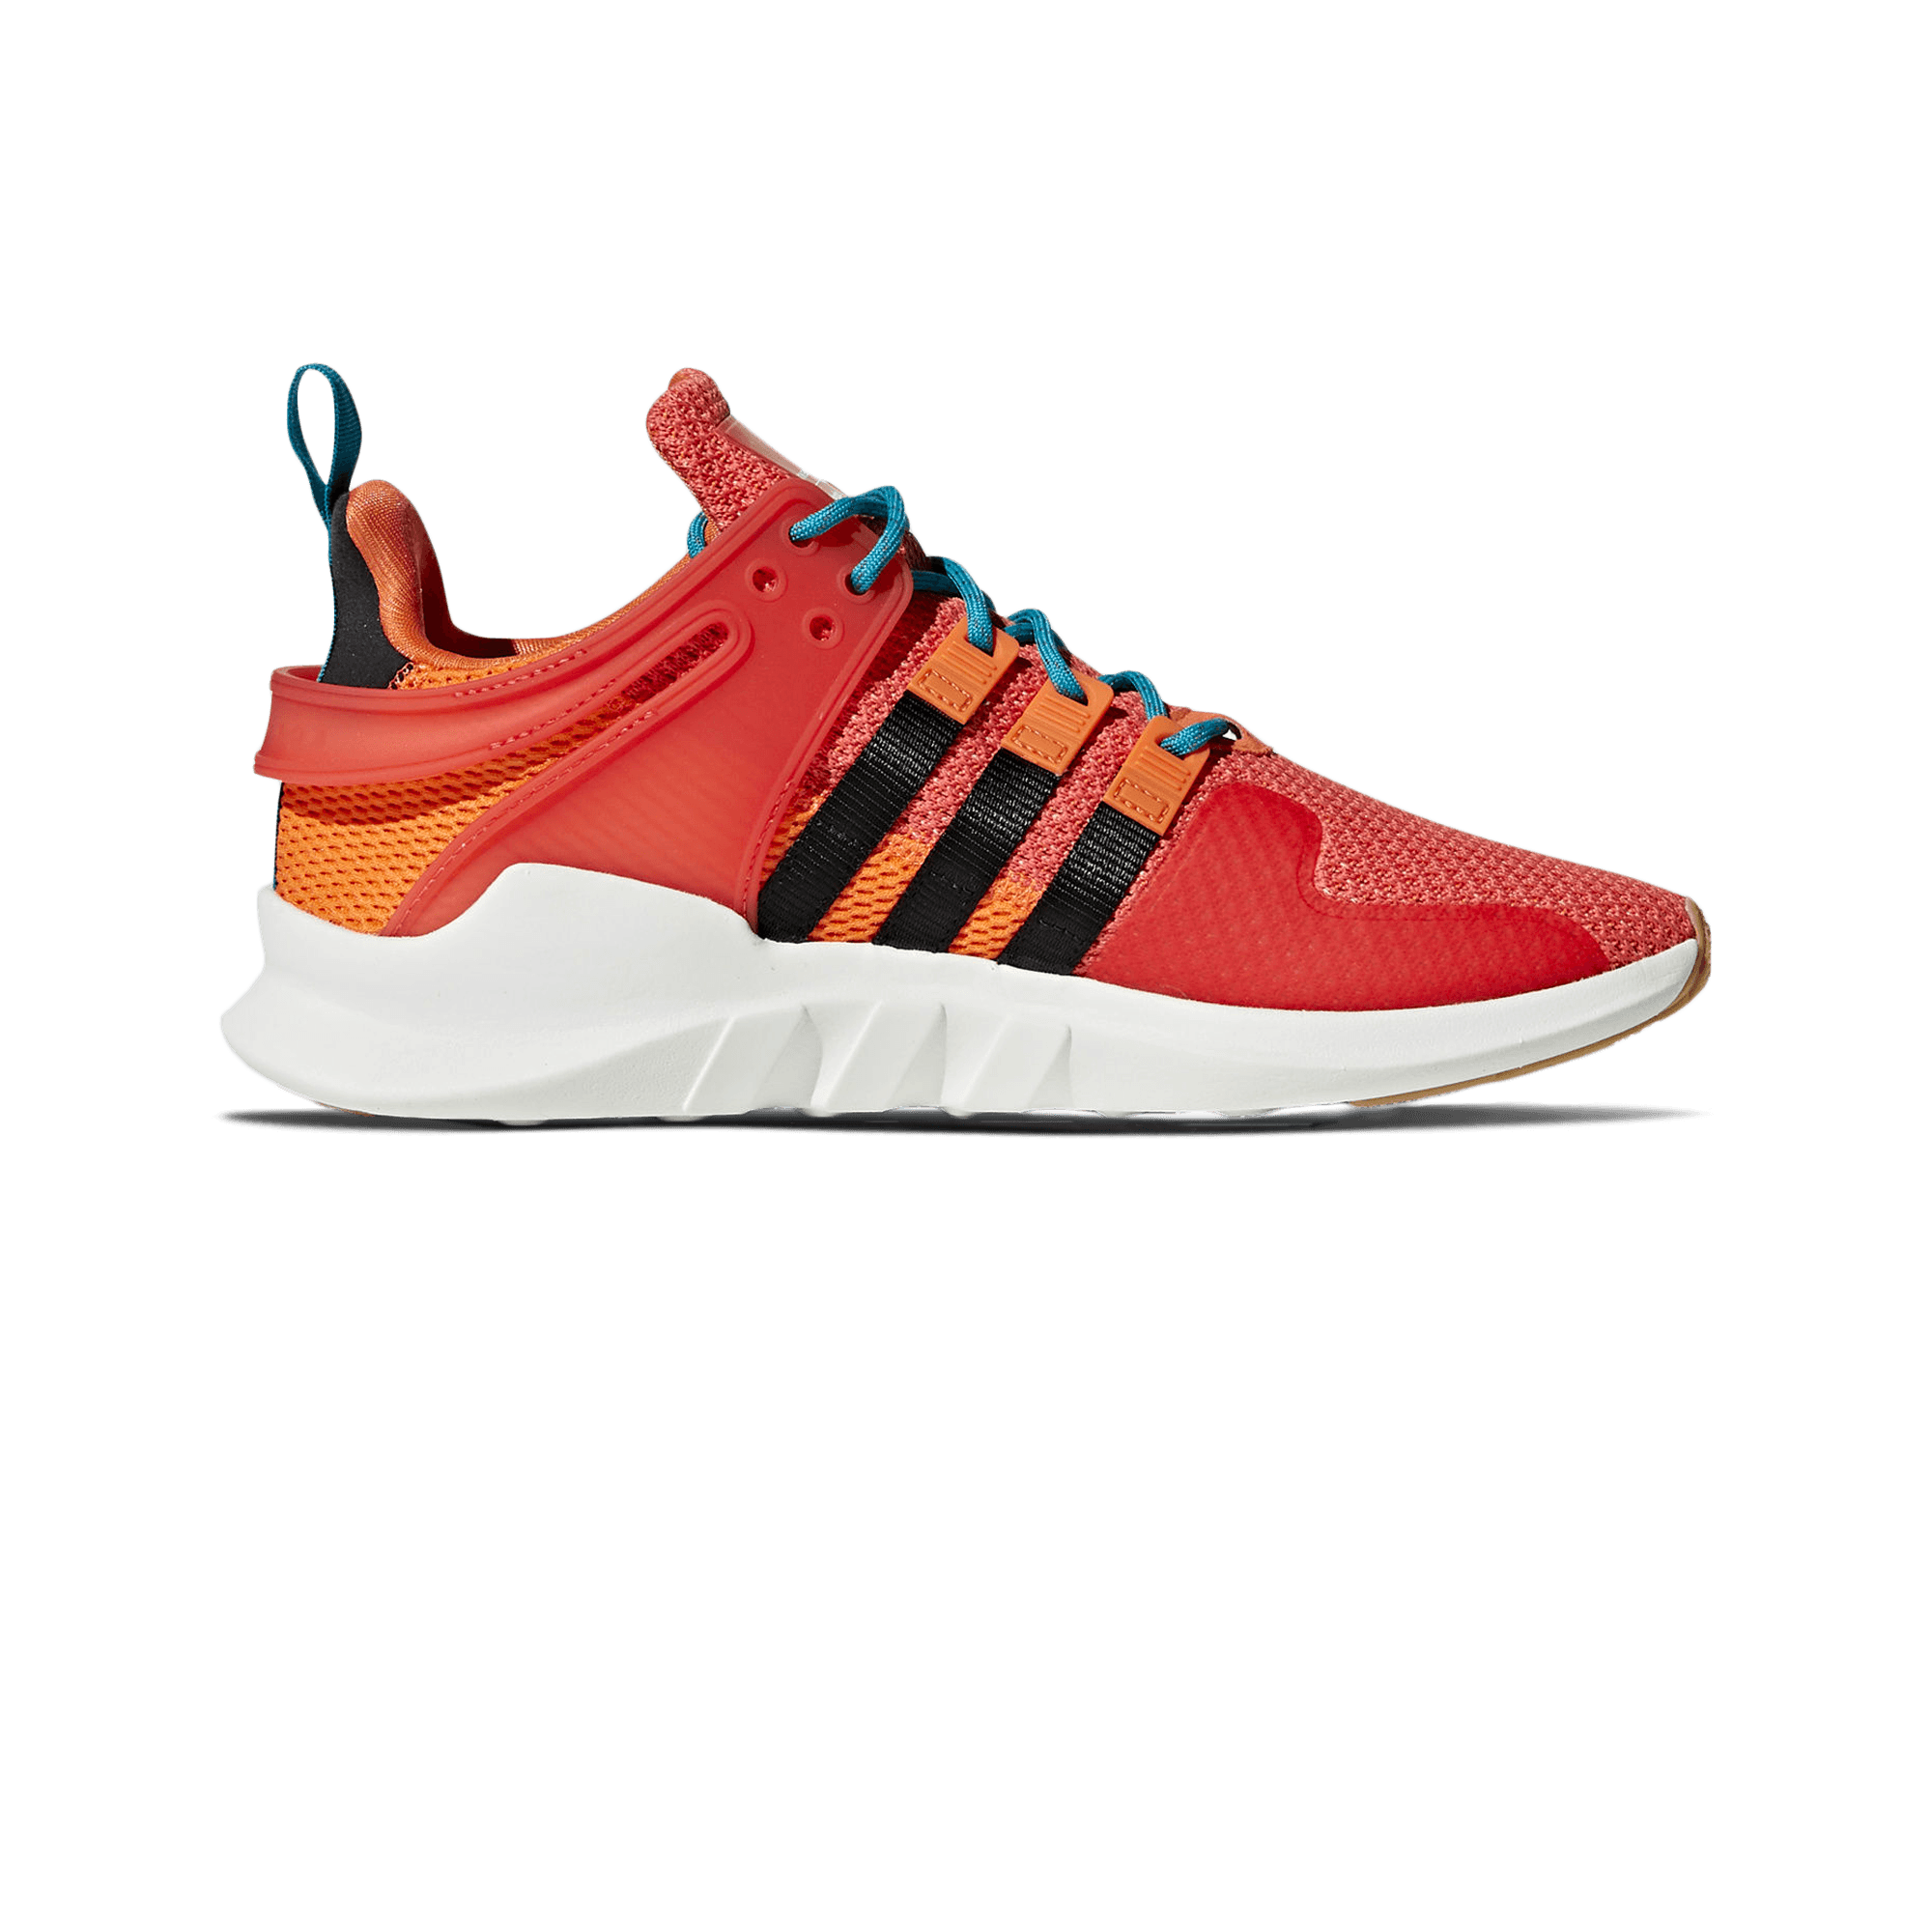 EQT Support ADV Summer trace orange / white tint / gum 3